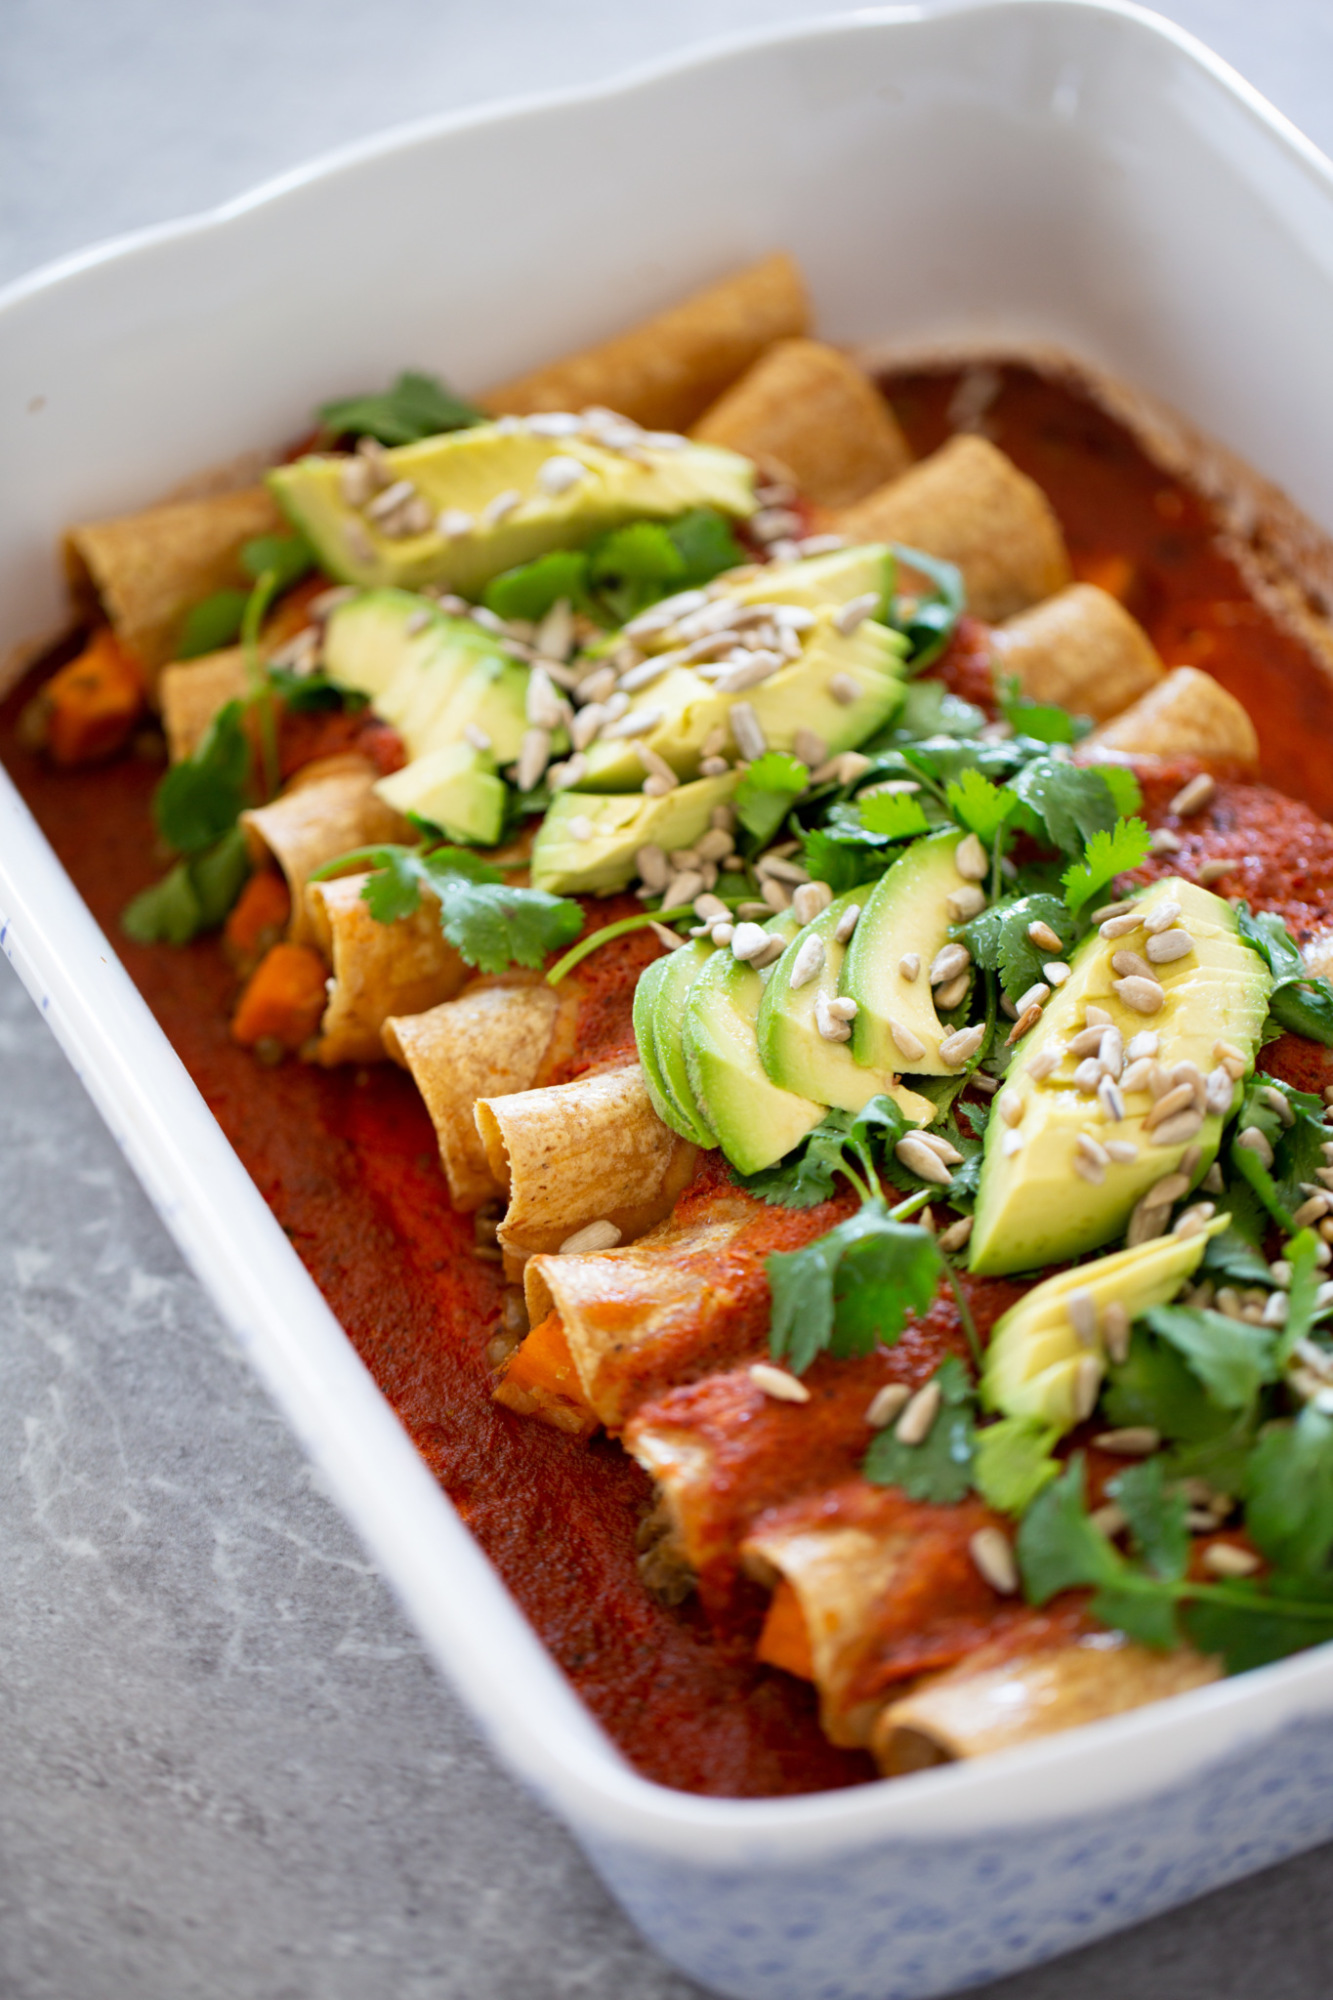 vegan enchiladas filled with lentils and sweet potatotoes